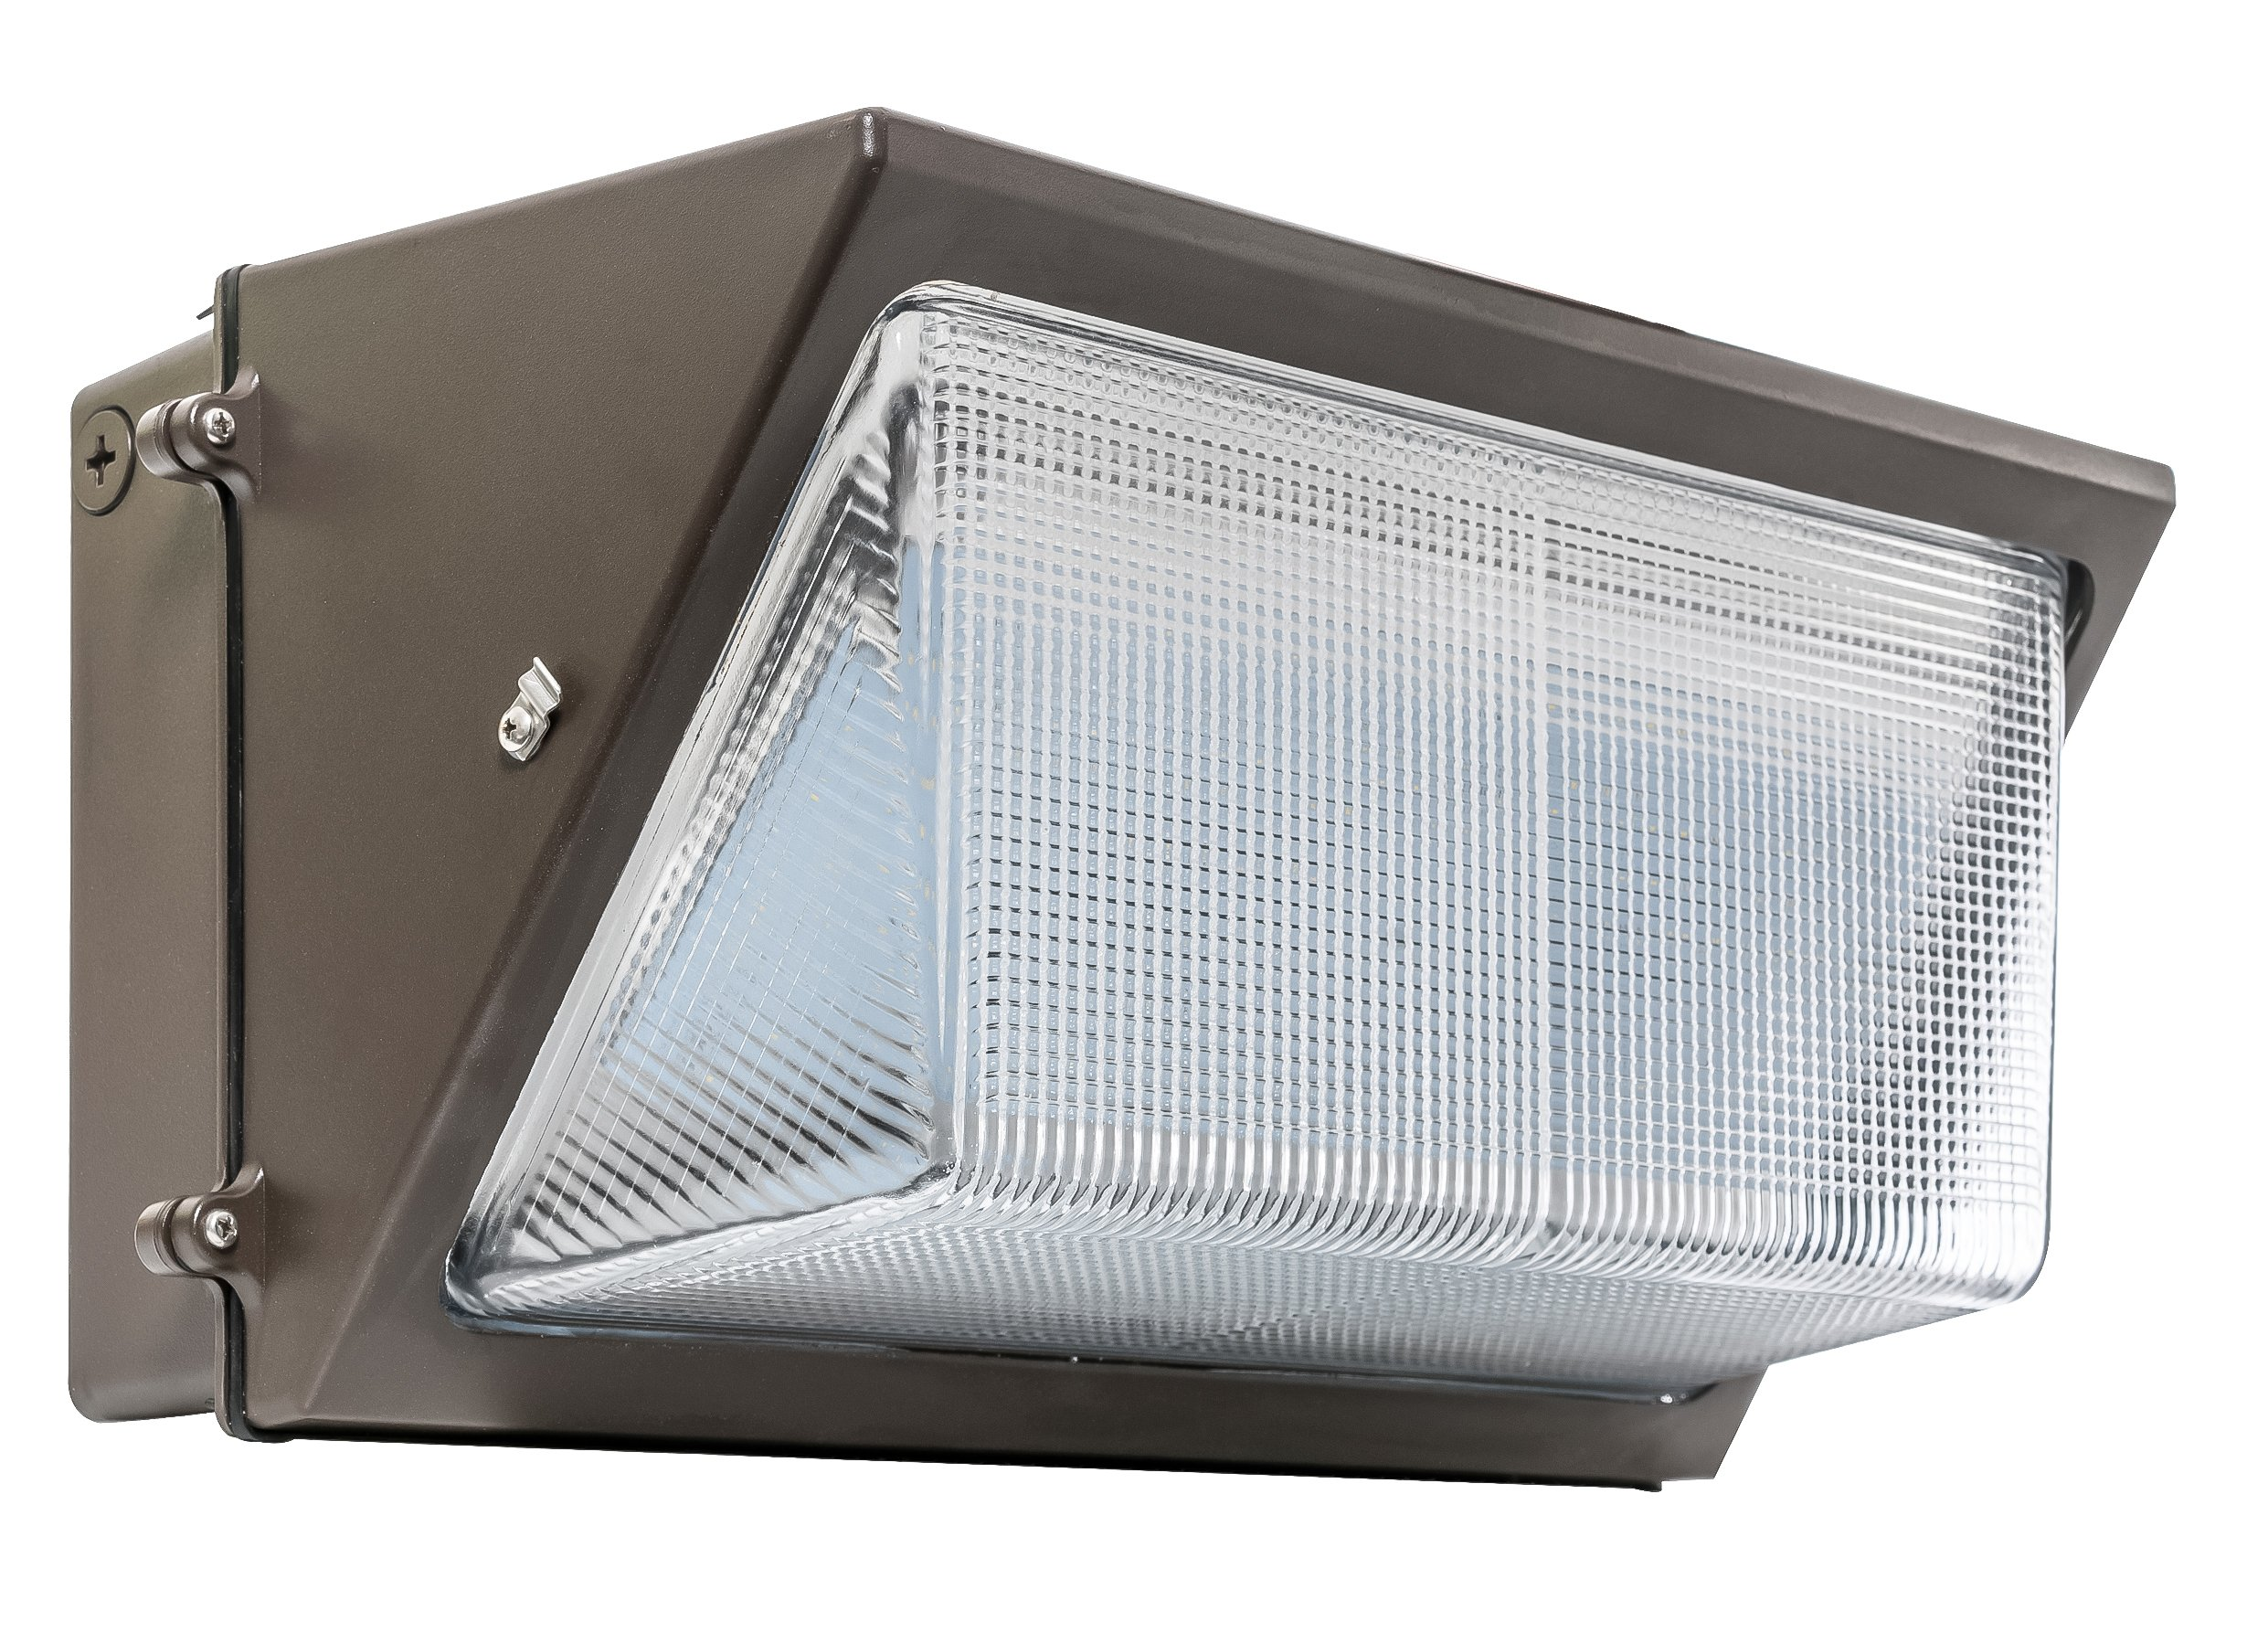 Westgate LED Wall Pack Fixture - Outdoor Security Wall Light for Area, Yard, Parking - Commercial Grade Industrial Quality HPS/HID Replacement - IP65 Waterproof (120 Watt, 4000K Neutral White)